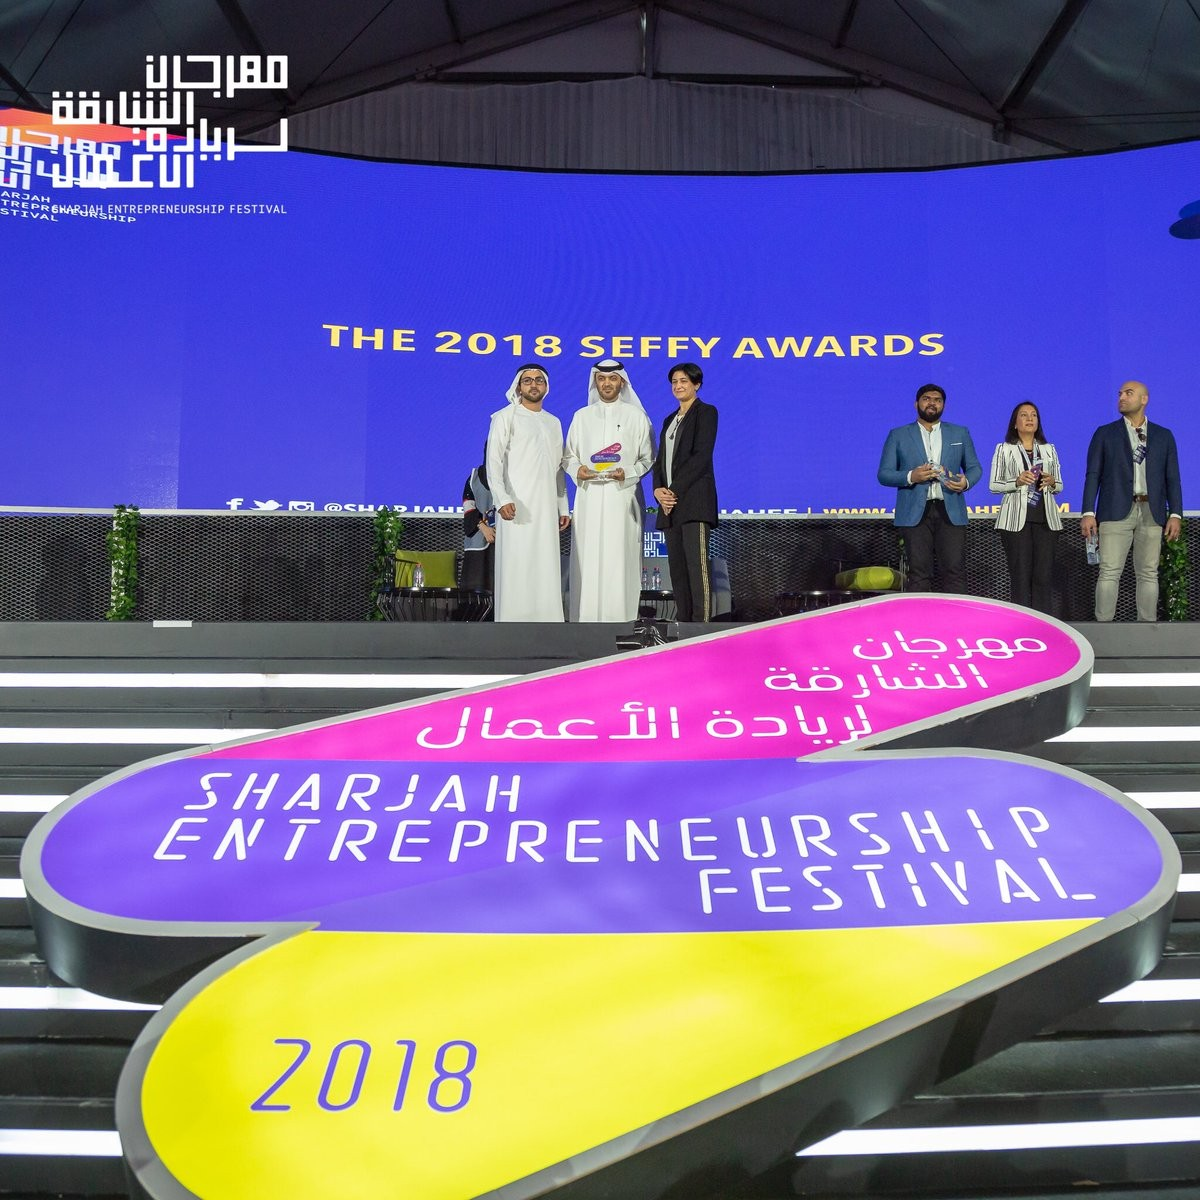 Sharjah Entrepreneurship Festival 2018